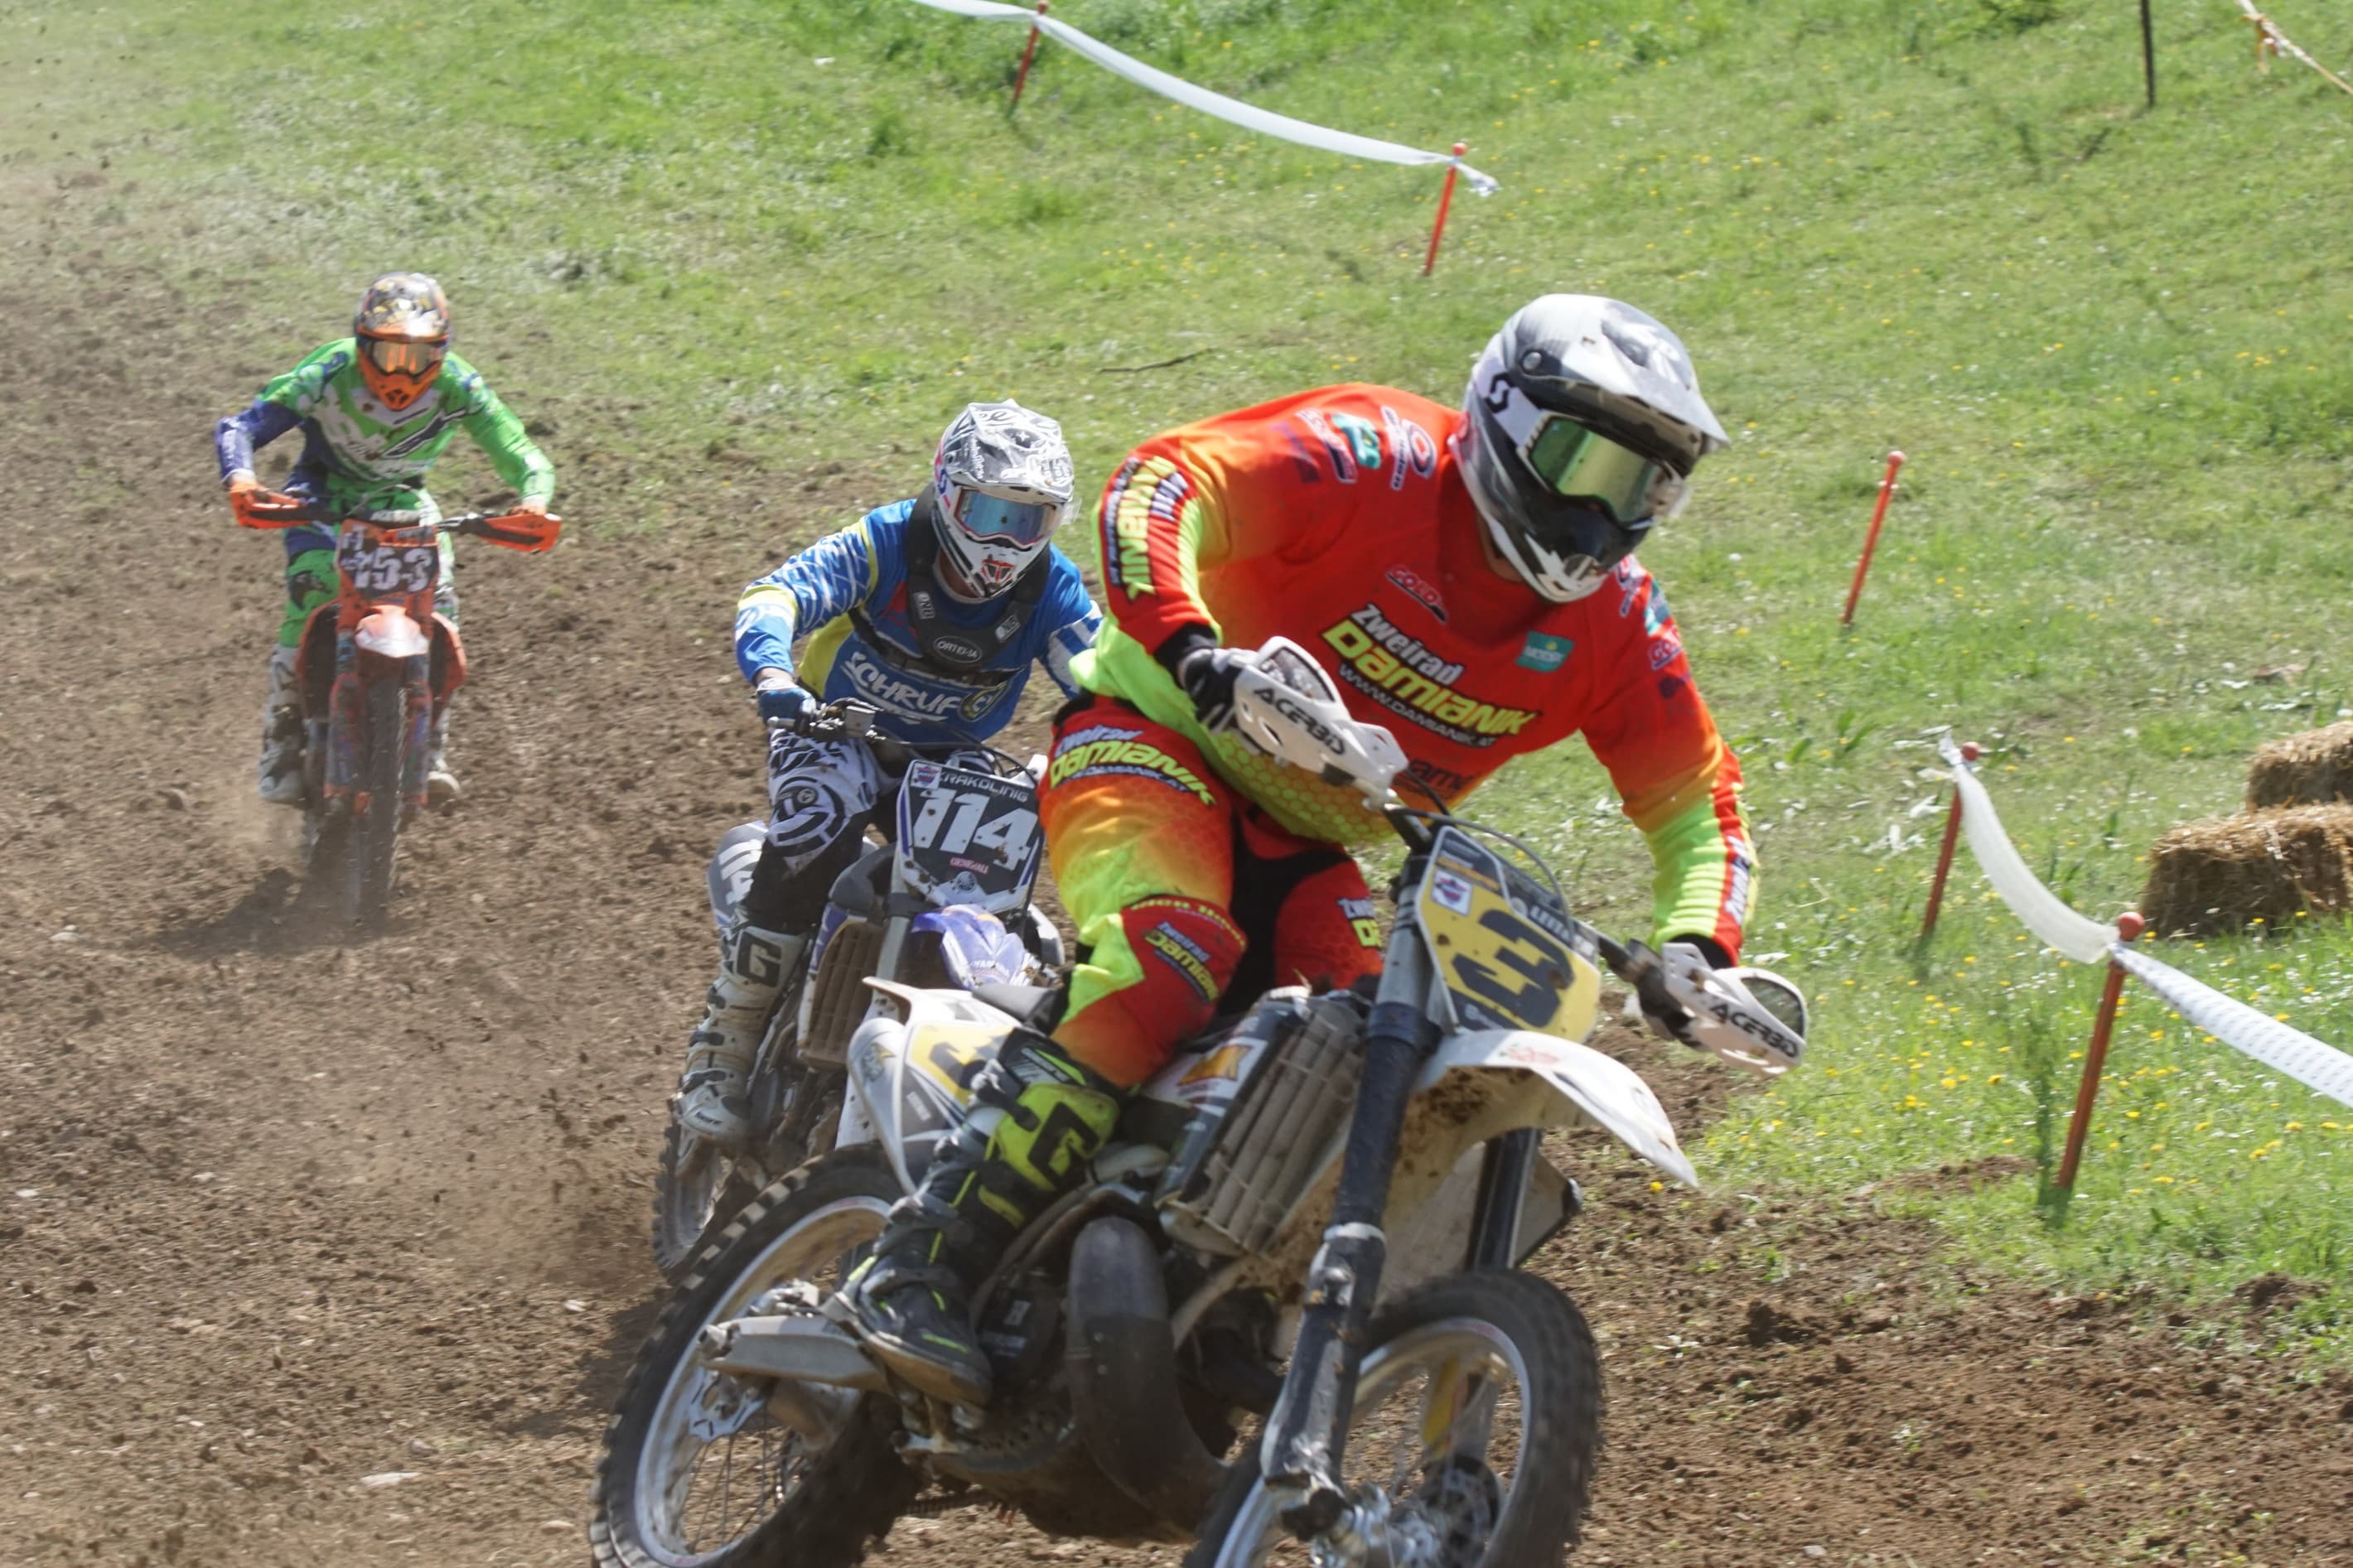 DSC 068_Moto Cross Sittendorf Teil1 am 29.04.2018